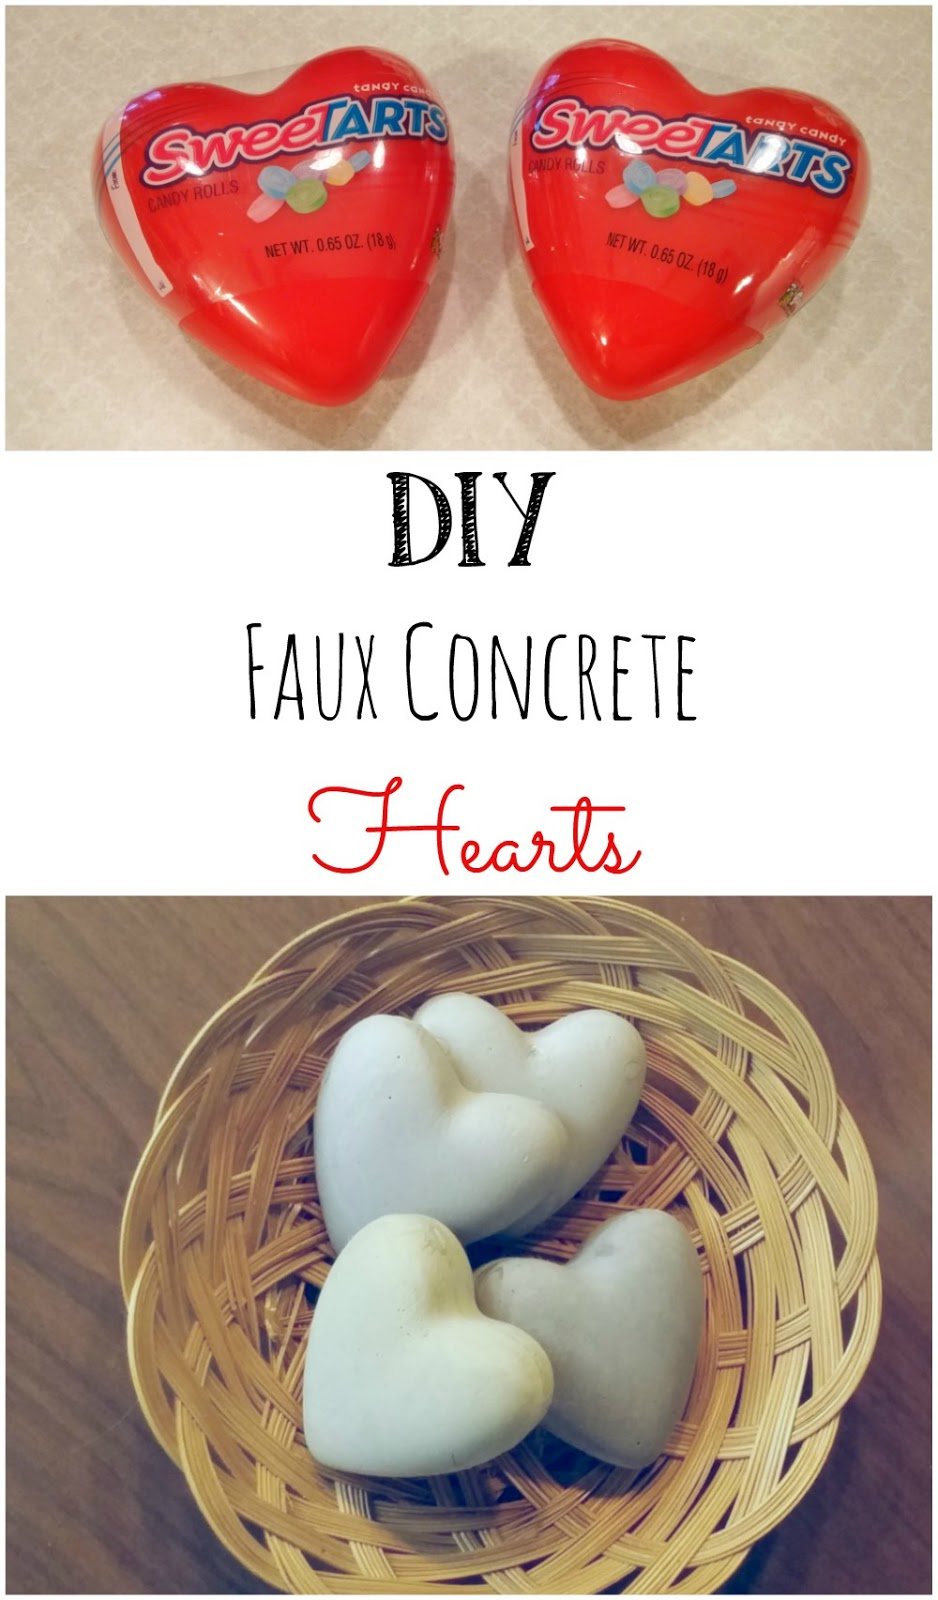 How to make faux concrete hearts with Plaster of Paris!